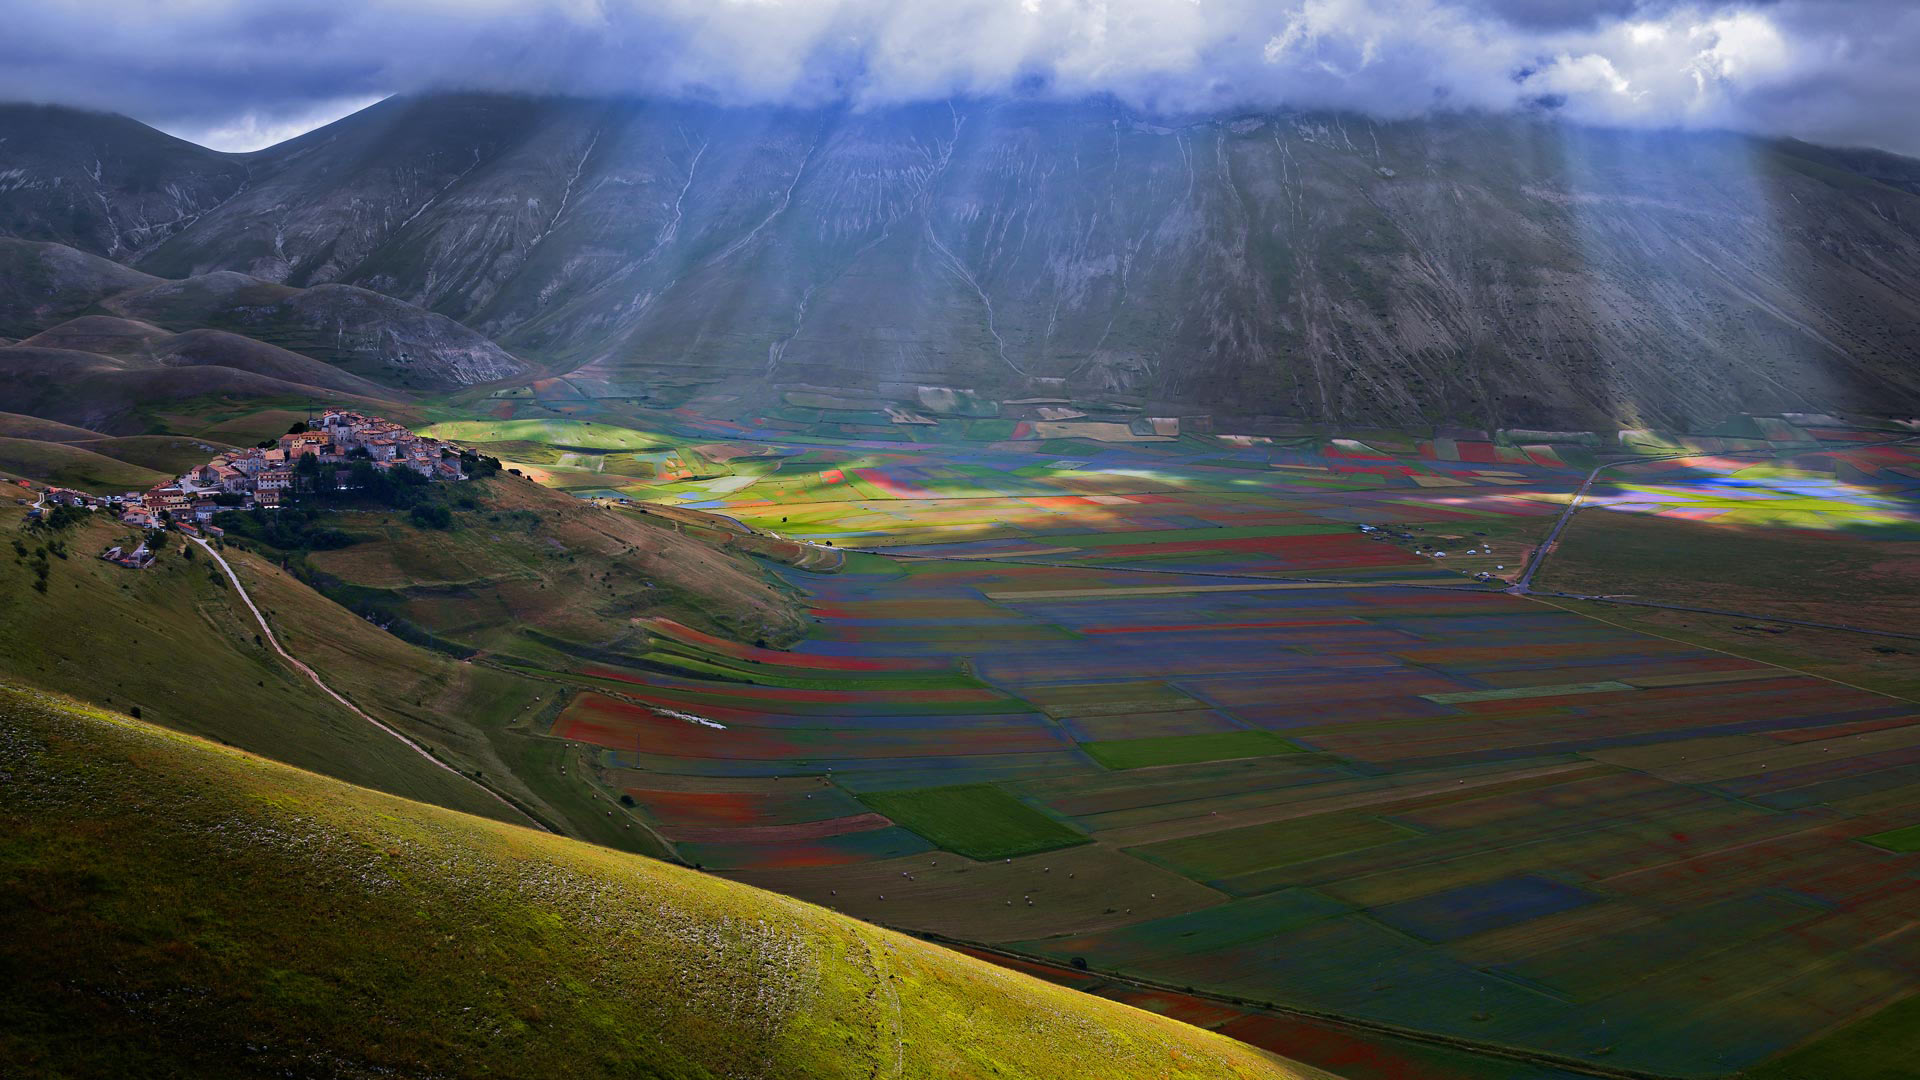 The village of Castelluccio above the Piano Grande, Umbria, Italy (© beppeverge/Getty Images)